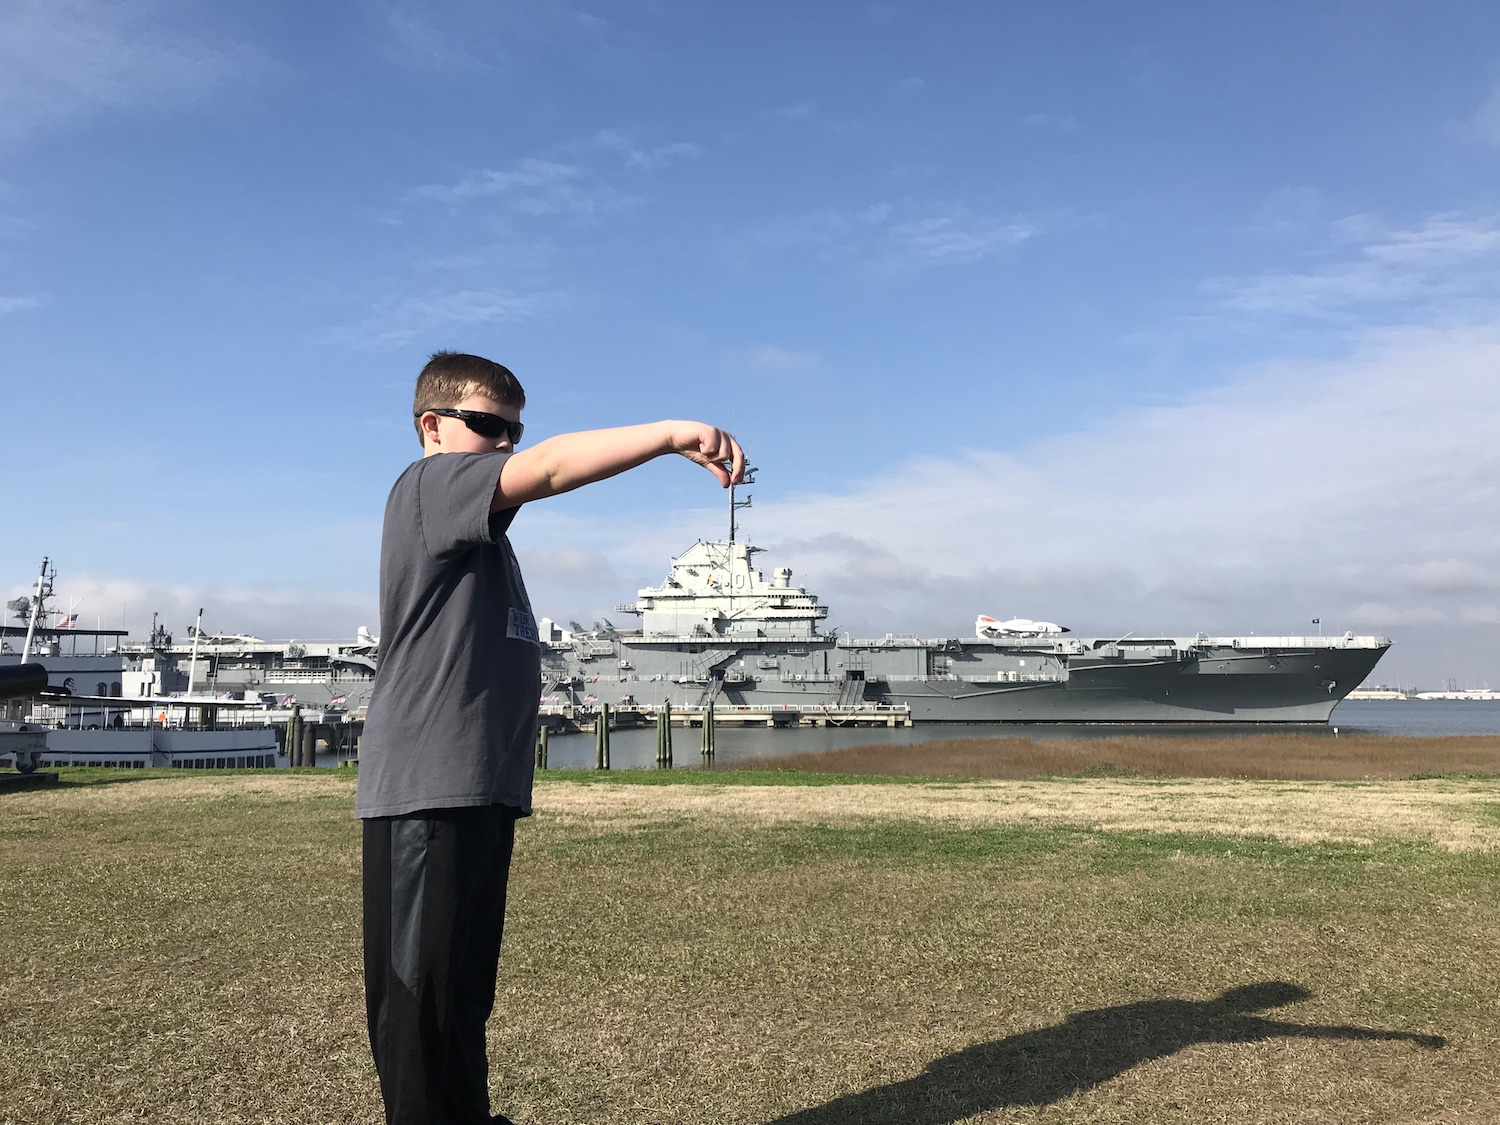 Travel Memories: Patriots Point